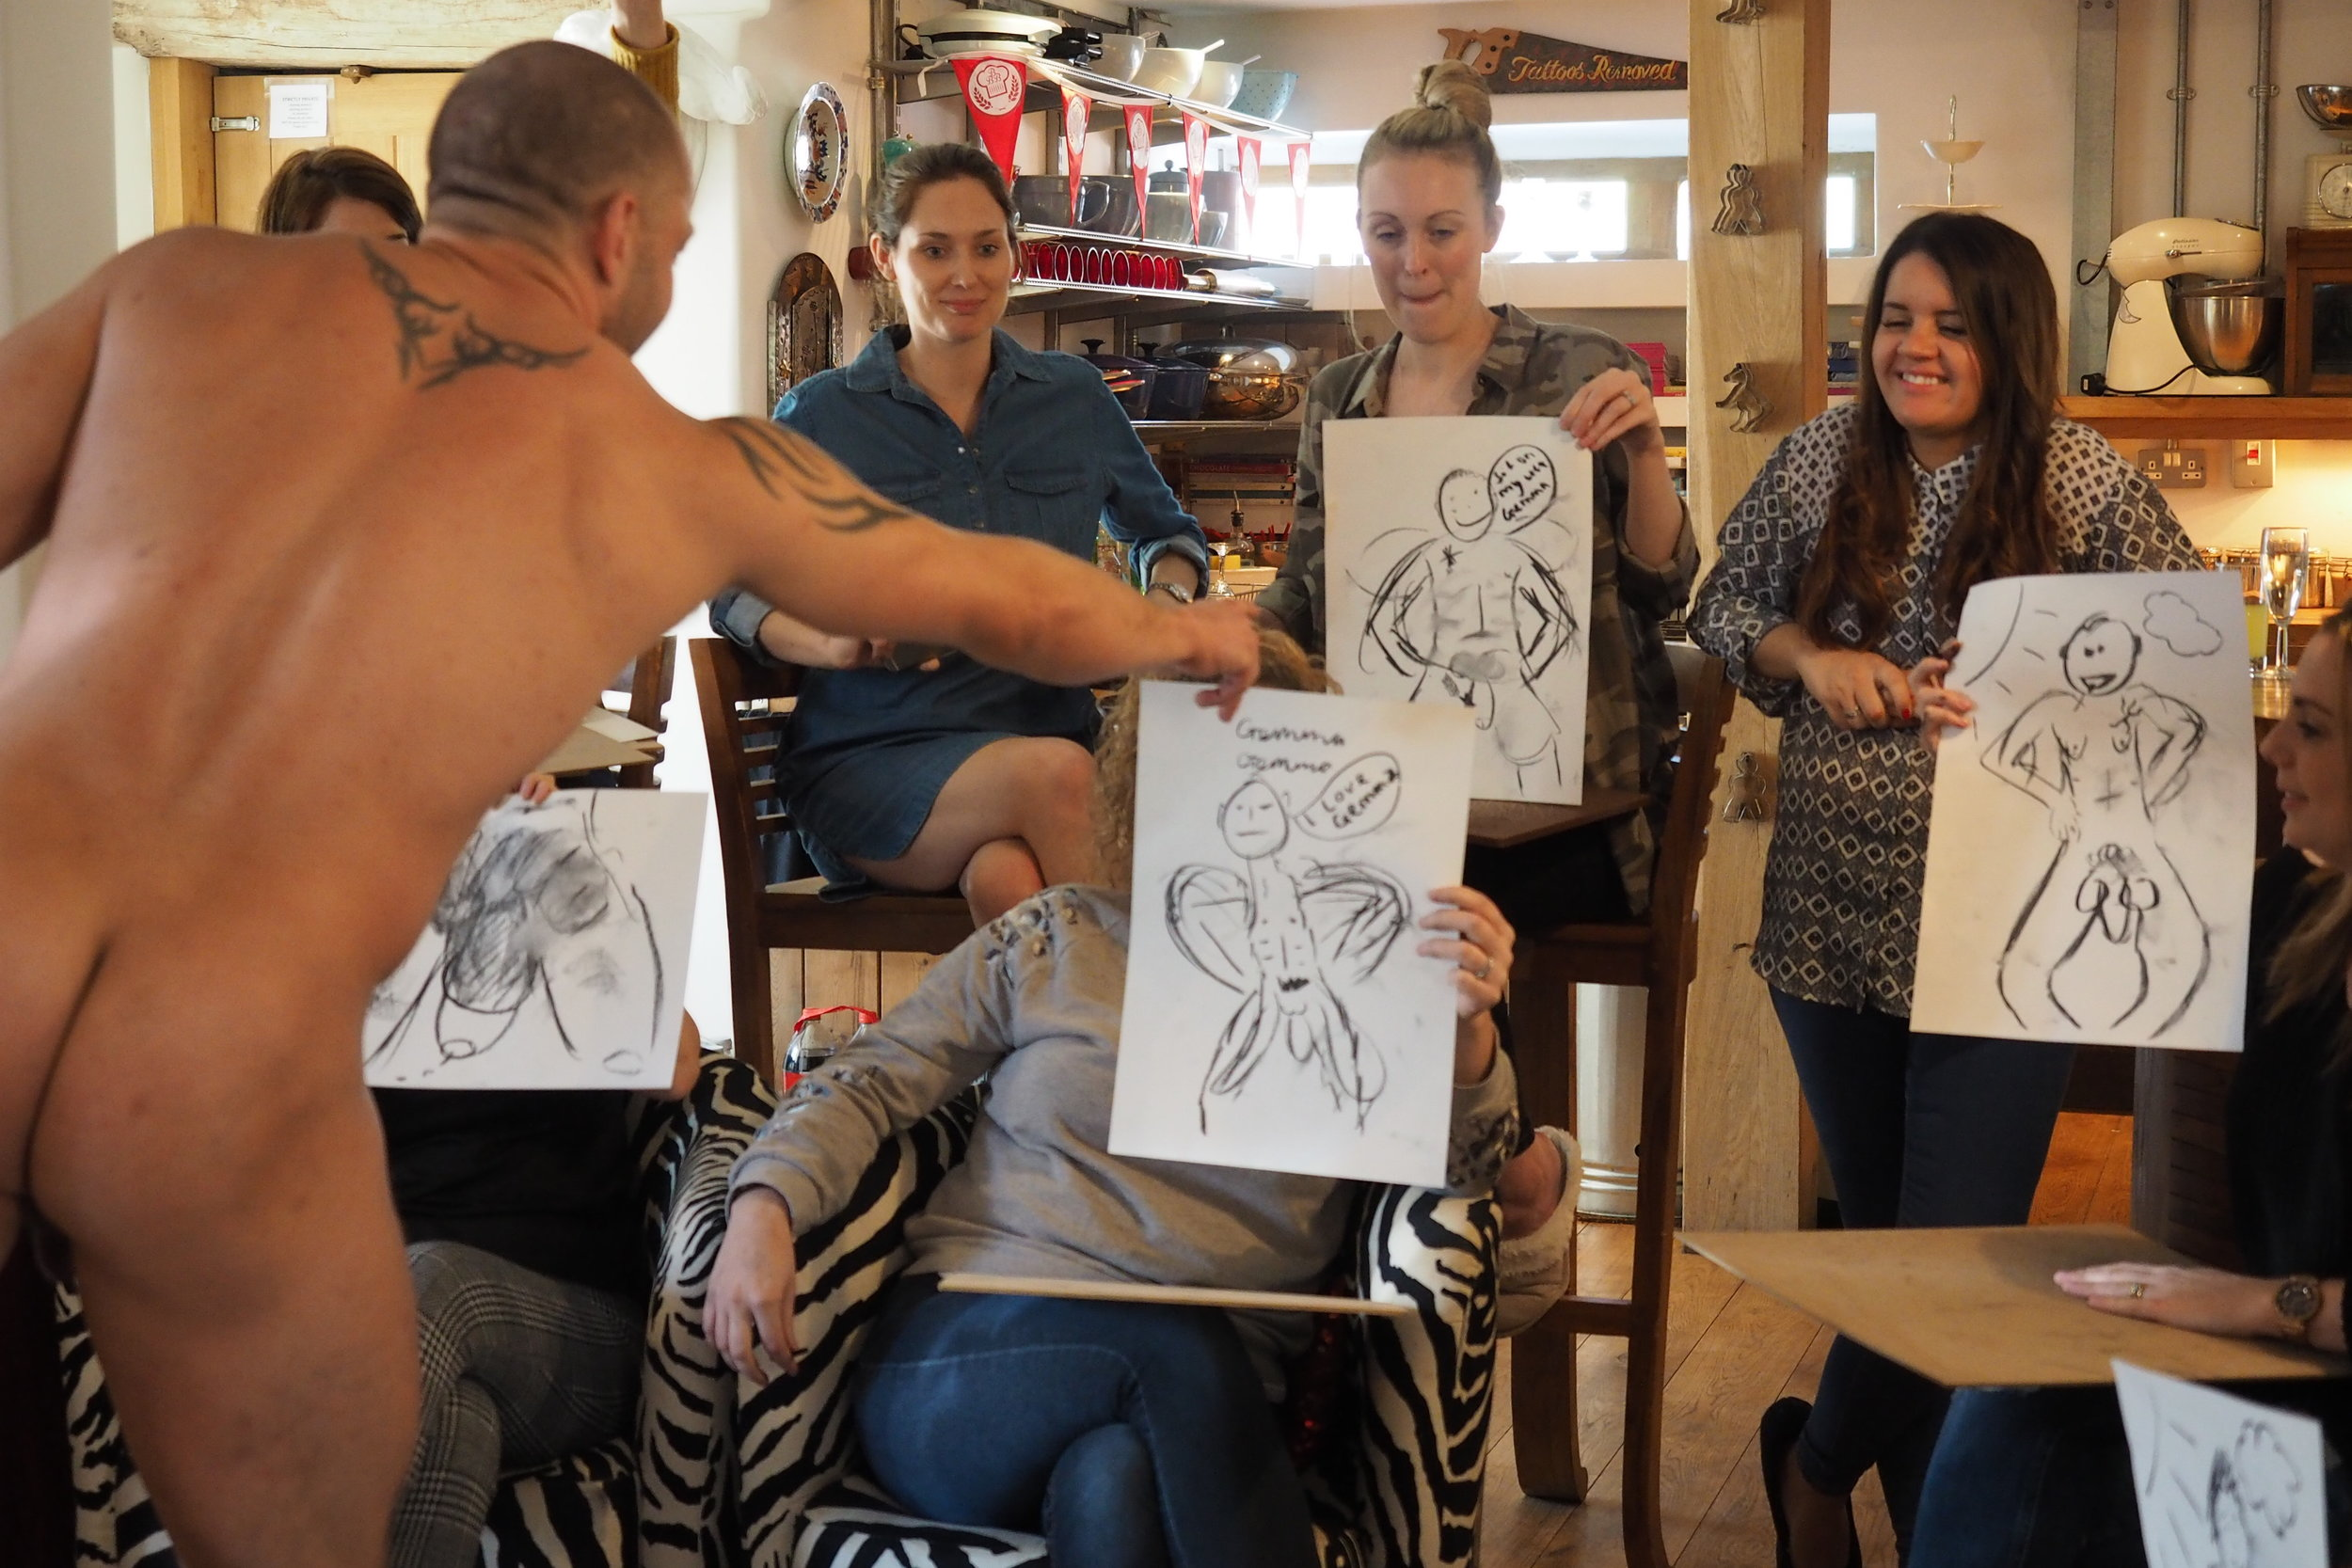 Life drawing art Class  Life drawing class with a butt naked male model.